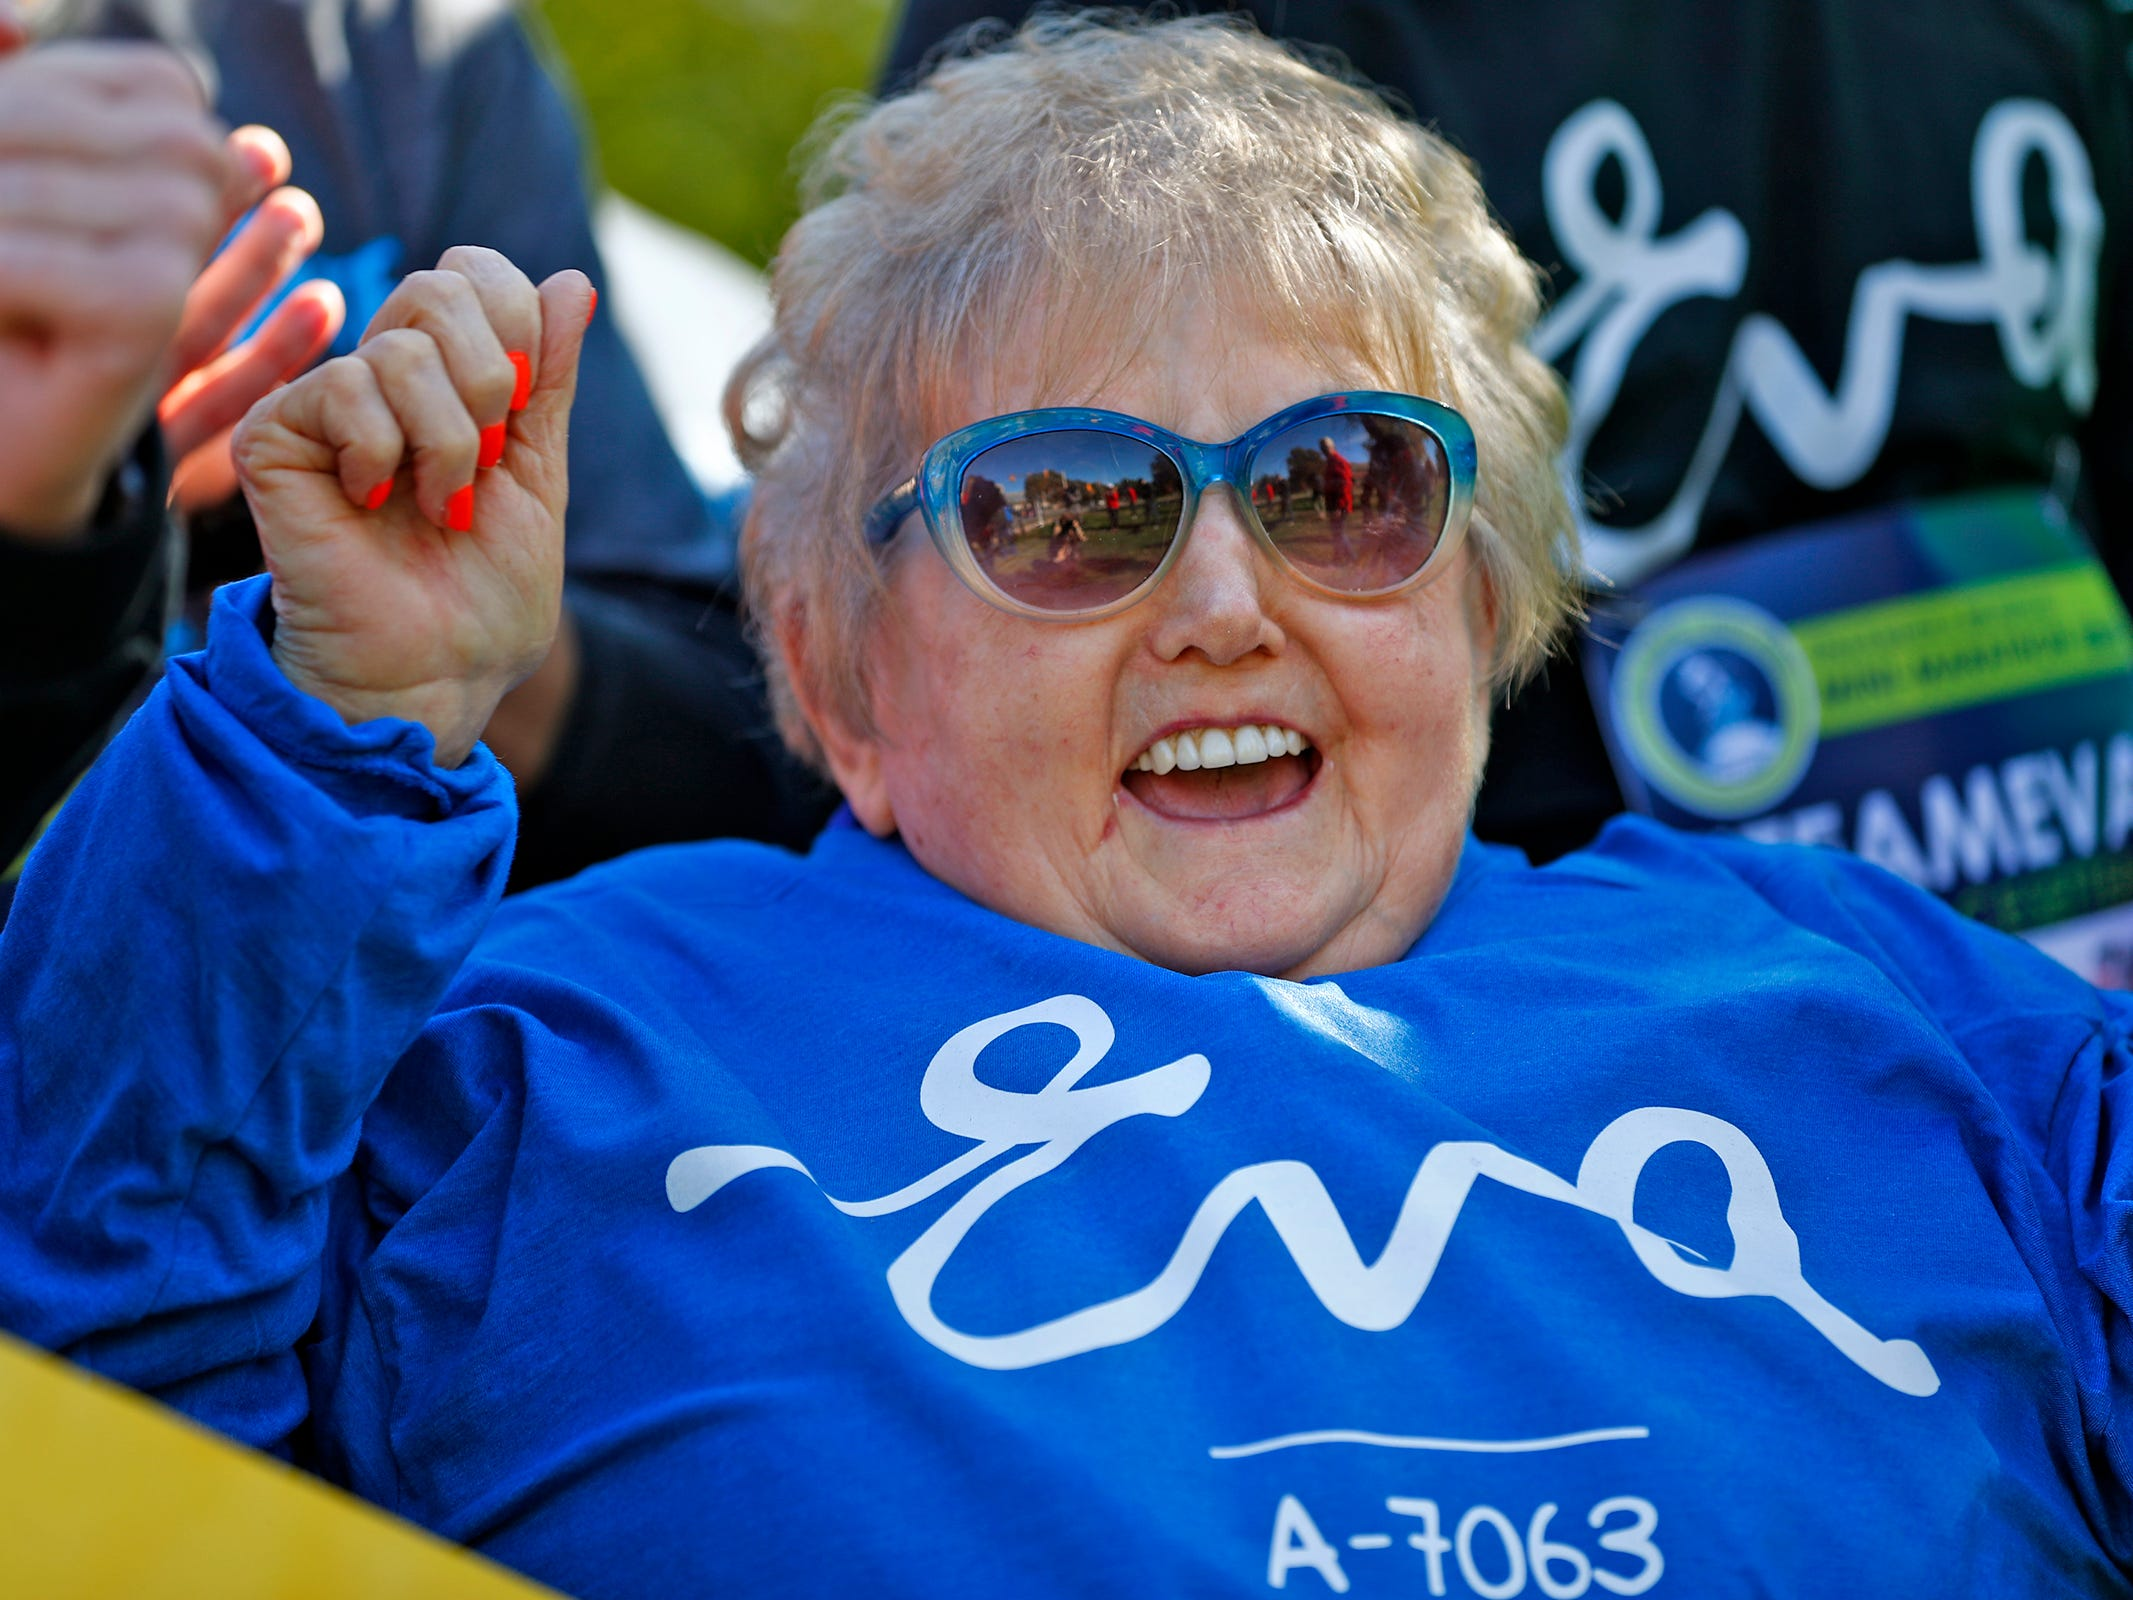 Holocaust survivor Eva Kor cheers and joins others at the end, Wednesday, Oct. 24, 2018, of the pace-setting run for the 2019 OneAmerica 500 Festival Mini-Marathon.  The 500 Festival will donate $1 to the CANDLES Holocaust Museum in Terre Haute for every mini-marathon participant who finishes the 2019 race in a better time than Team Eva, which was 2 hours, 7 minutes, 36 seconds.  Kor ran the very last part of the relay race to add to the time.